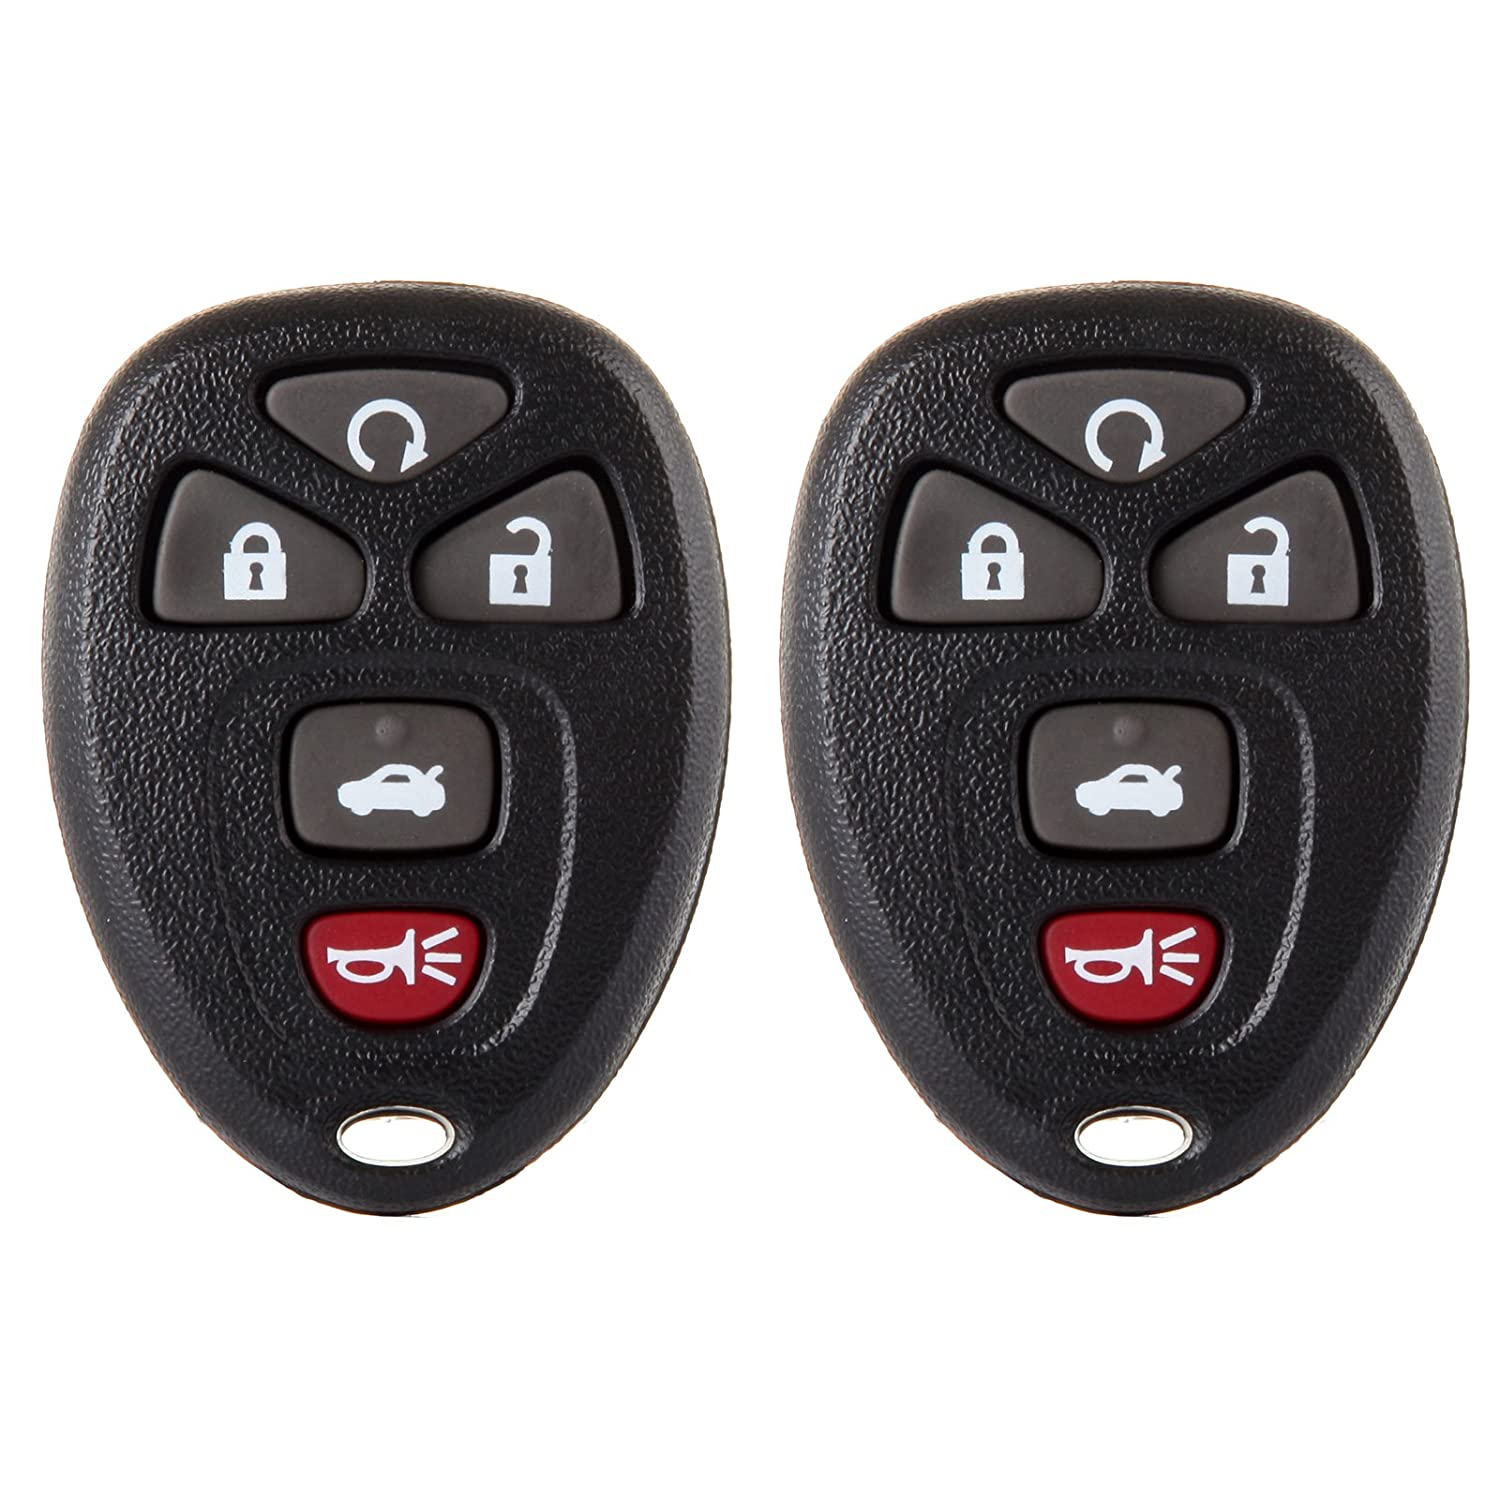 Pack of 2 ECCPP Replacement fit for Uncut Keyless Entry Remote Control Car Key Fob Shell Case Chevy Buick Pontiac Series KOBGT04A